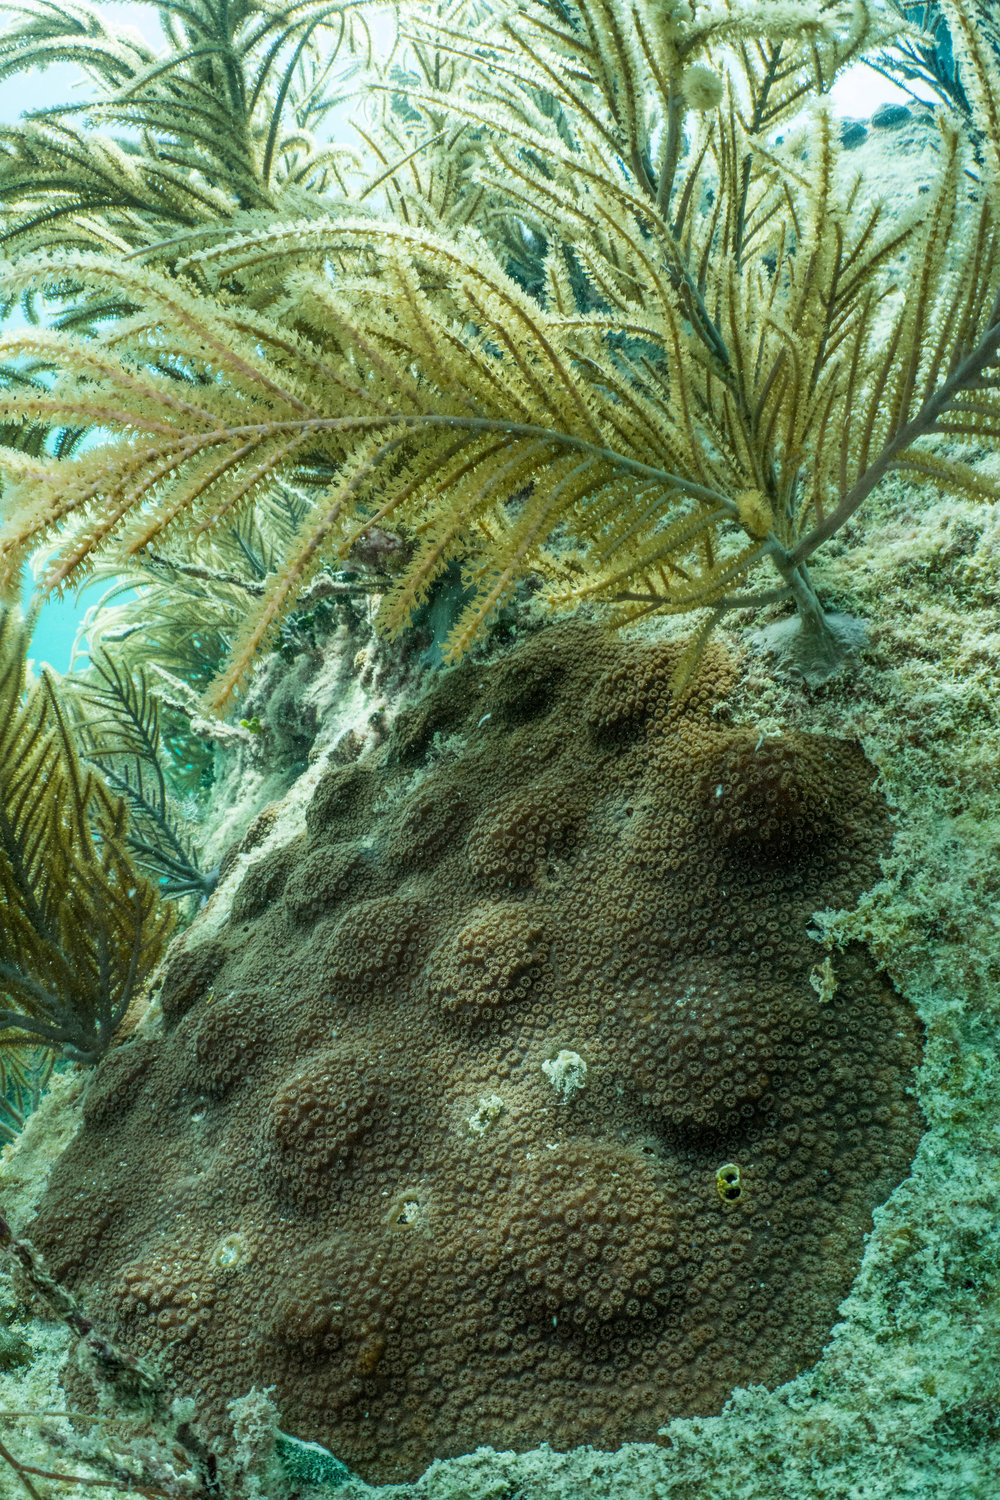 20 fragments of Mountainous Star Coral complete the fusion process, creating one large colony.